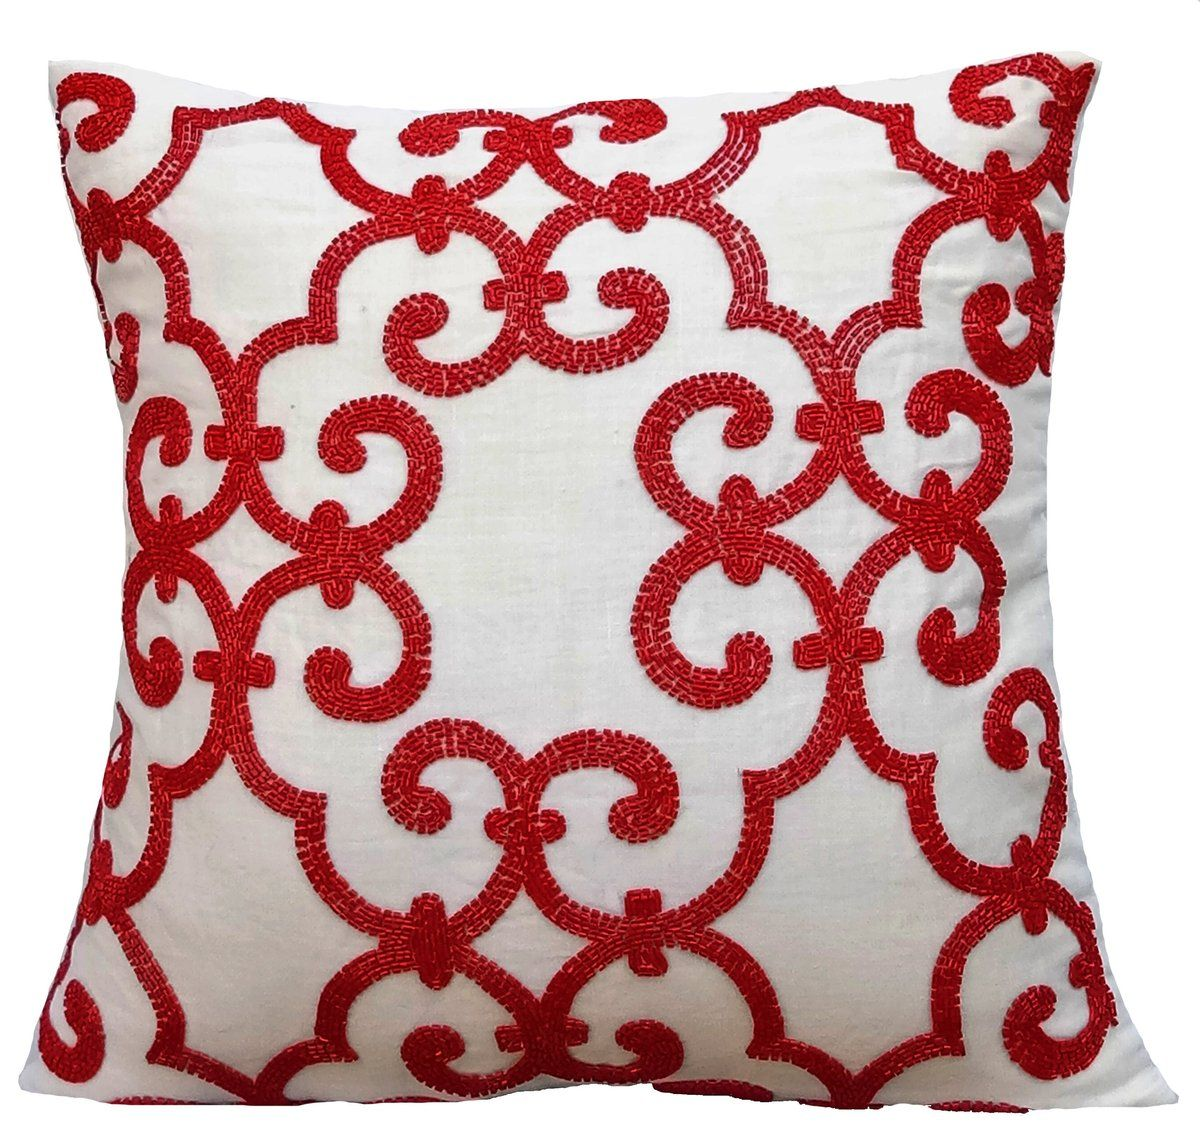 Red Encrusted Red Cotton Linen Throw Pillow Cover Red Throw Pillows Throw Pillows Linen Throw Pillow